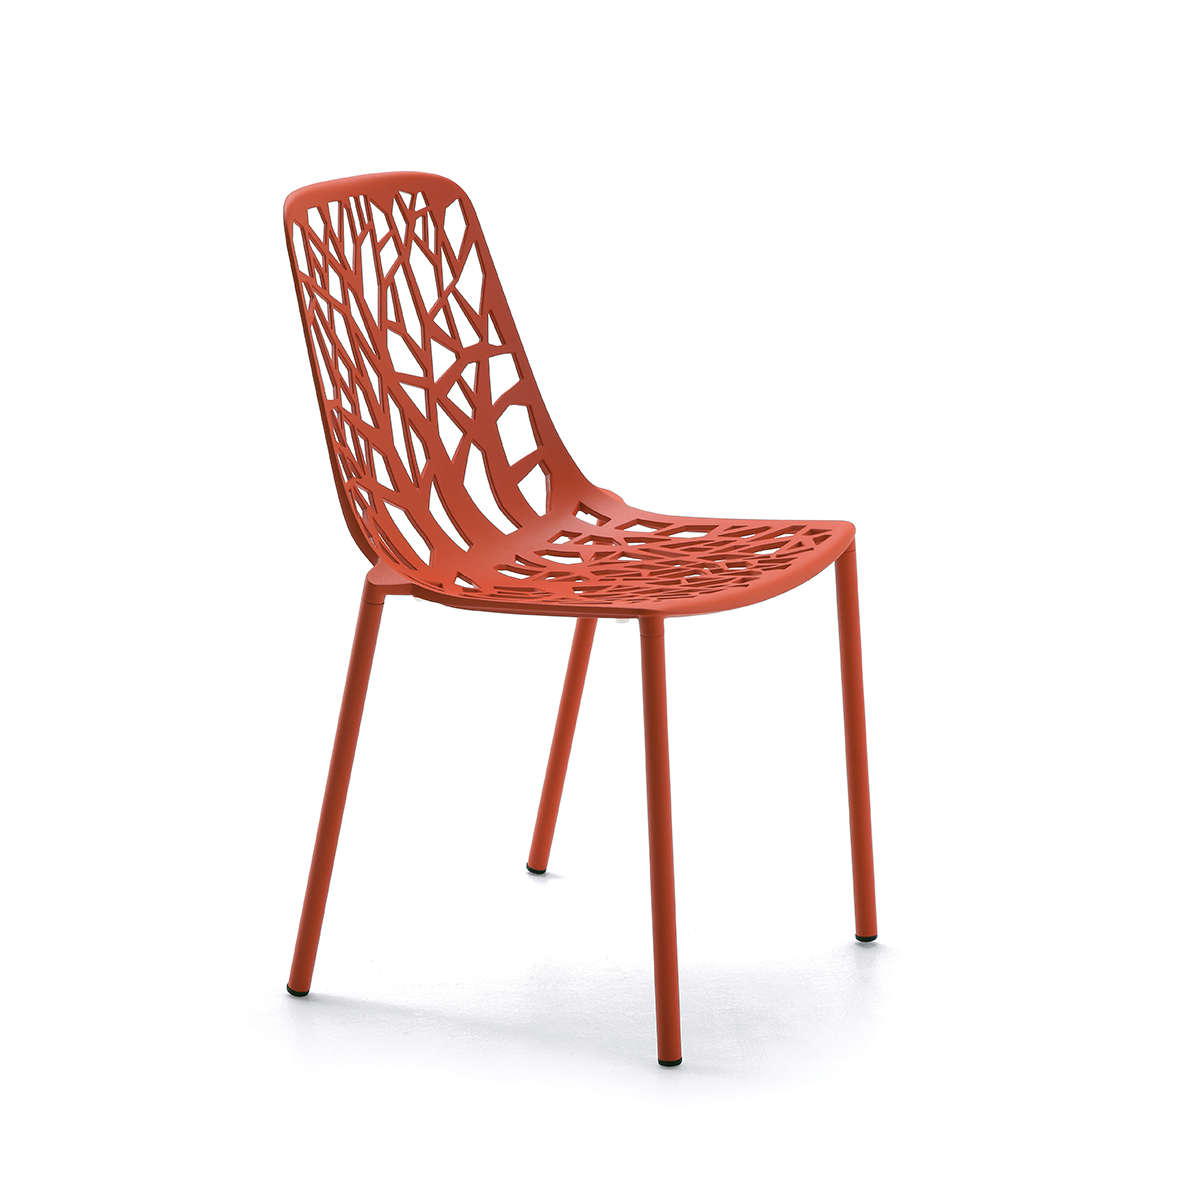 The Modern Garden Company | Forest 6501 Stacking Chair